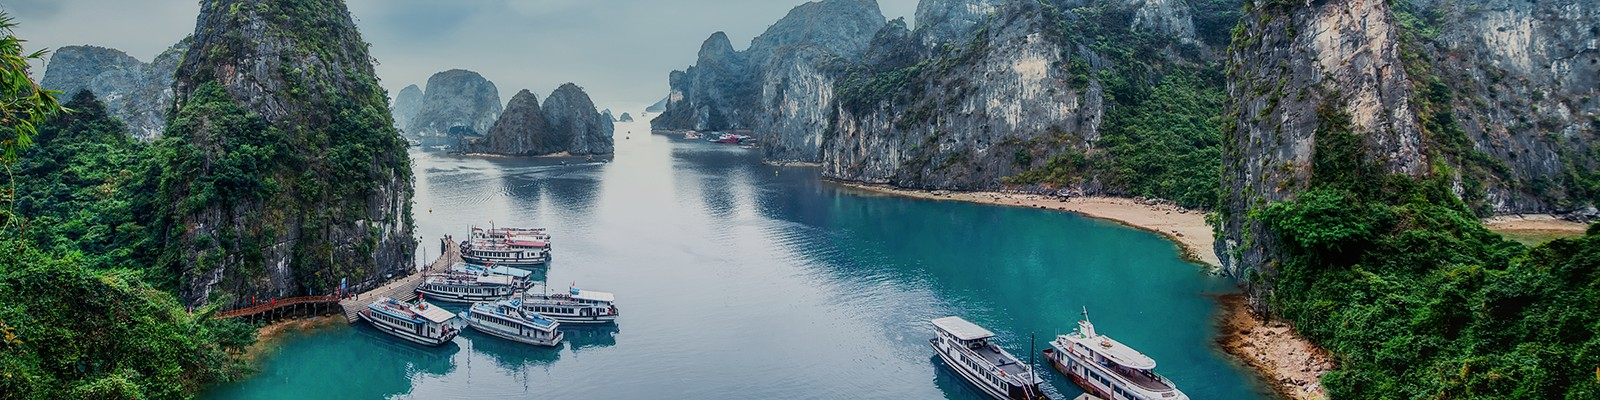 vietnam honeymoon packages header